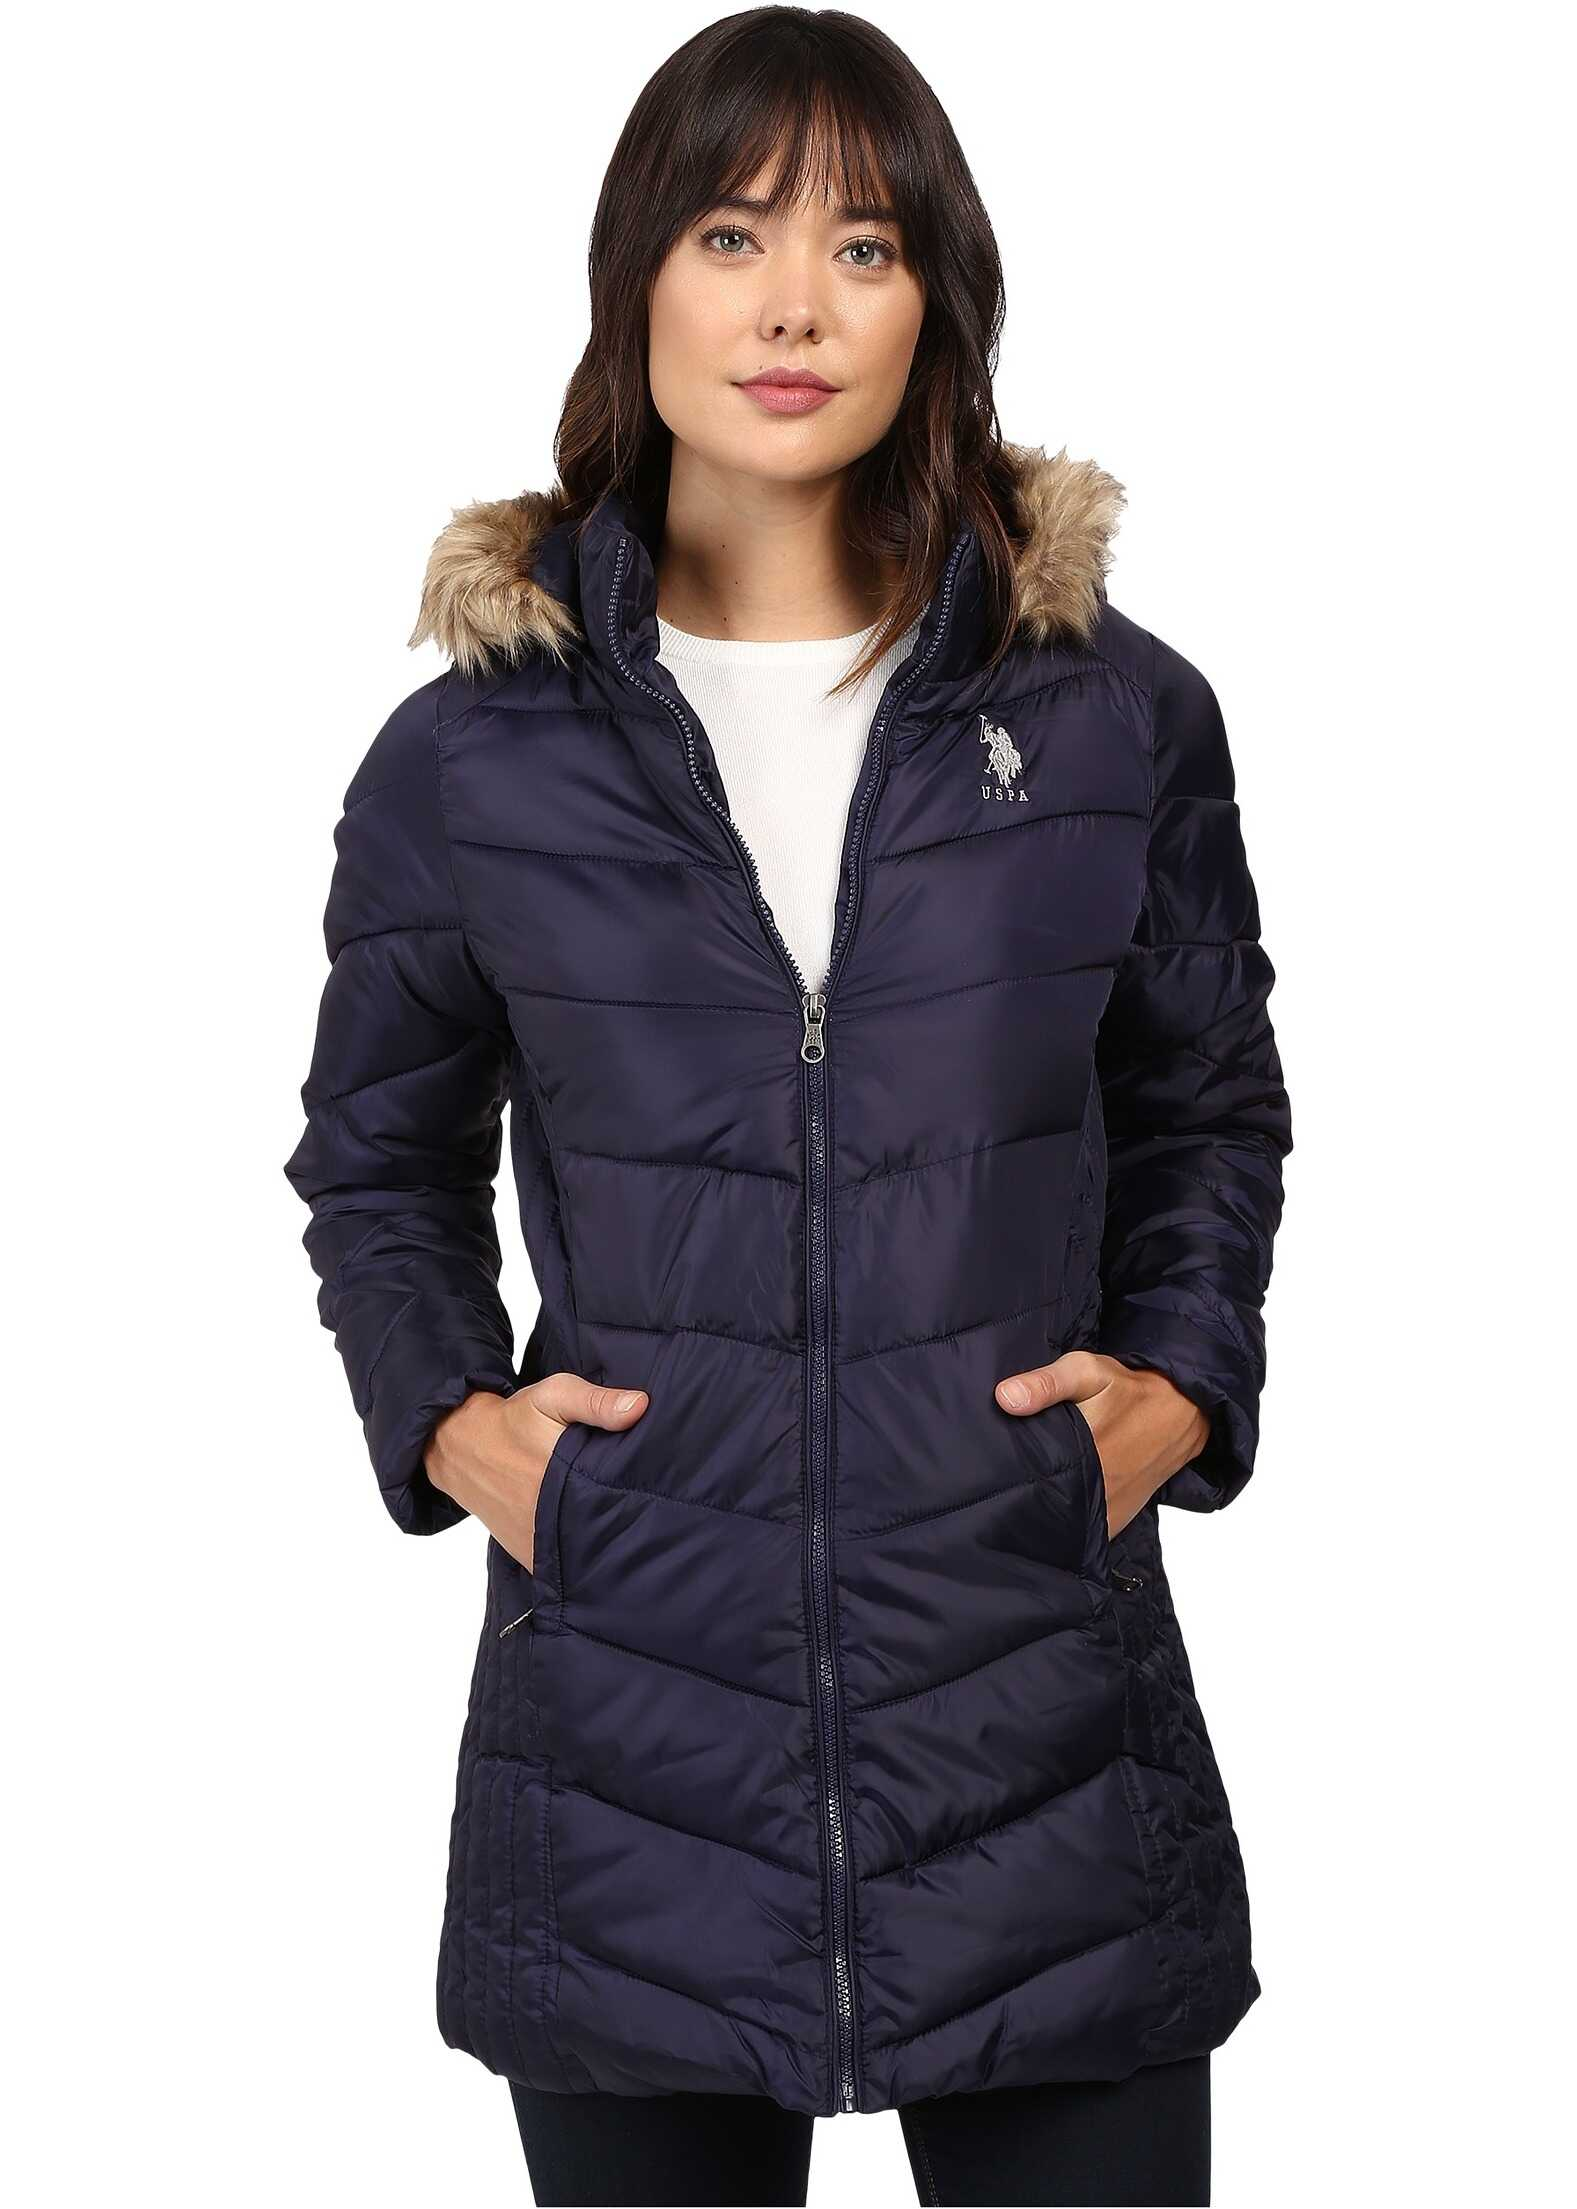 U.S. POLO ASSN. Faux Fur Trimmed Parka Jacket Evening Blue